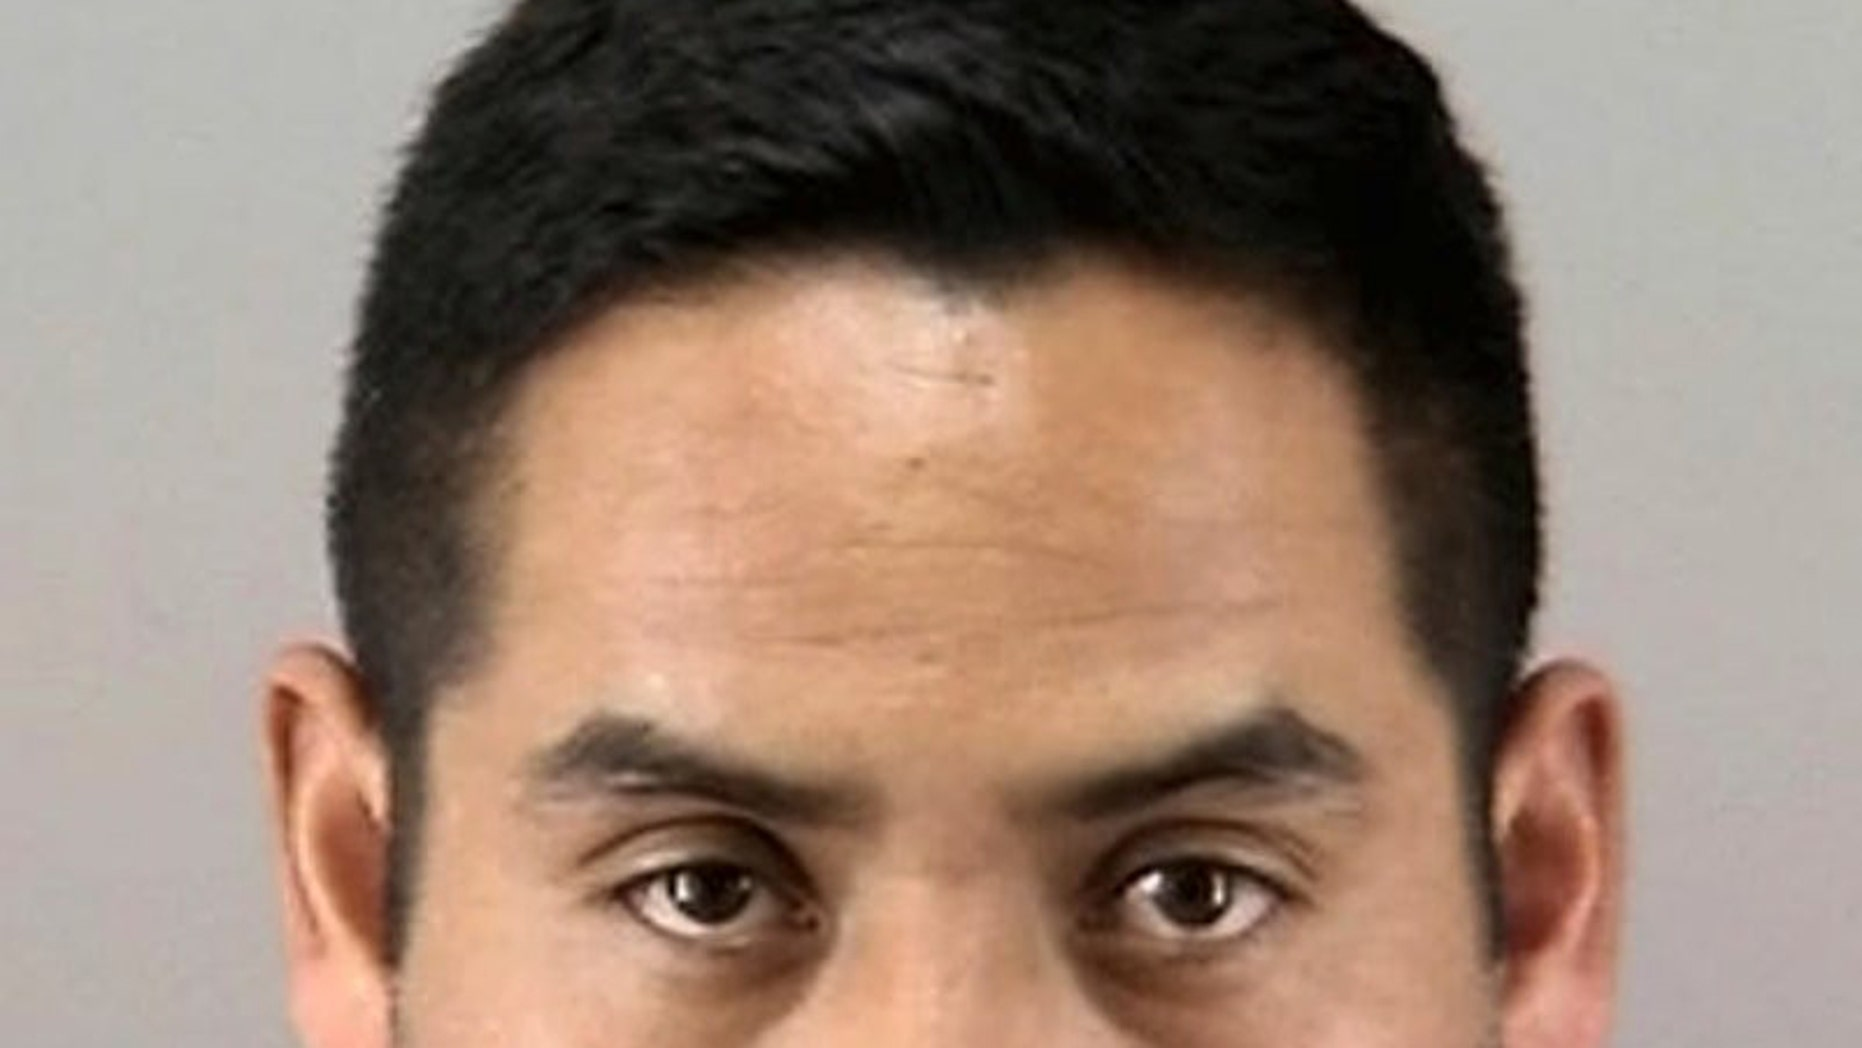 Orlando Vilchez Lazo, 36,  has been arrested after he allegedly preyed on women by posing as a ride-hailing driver.